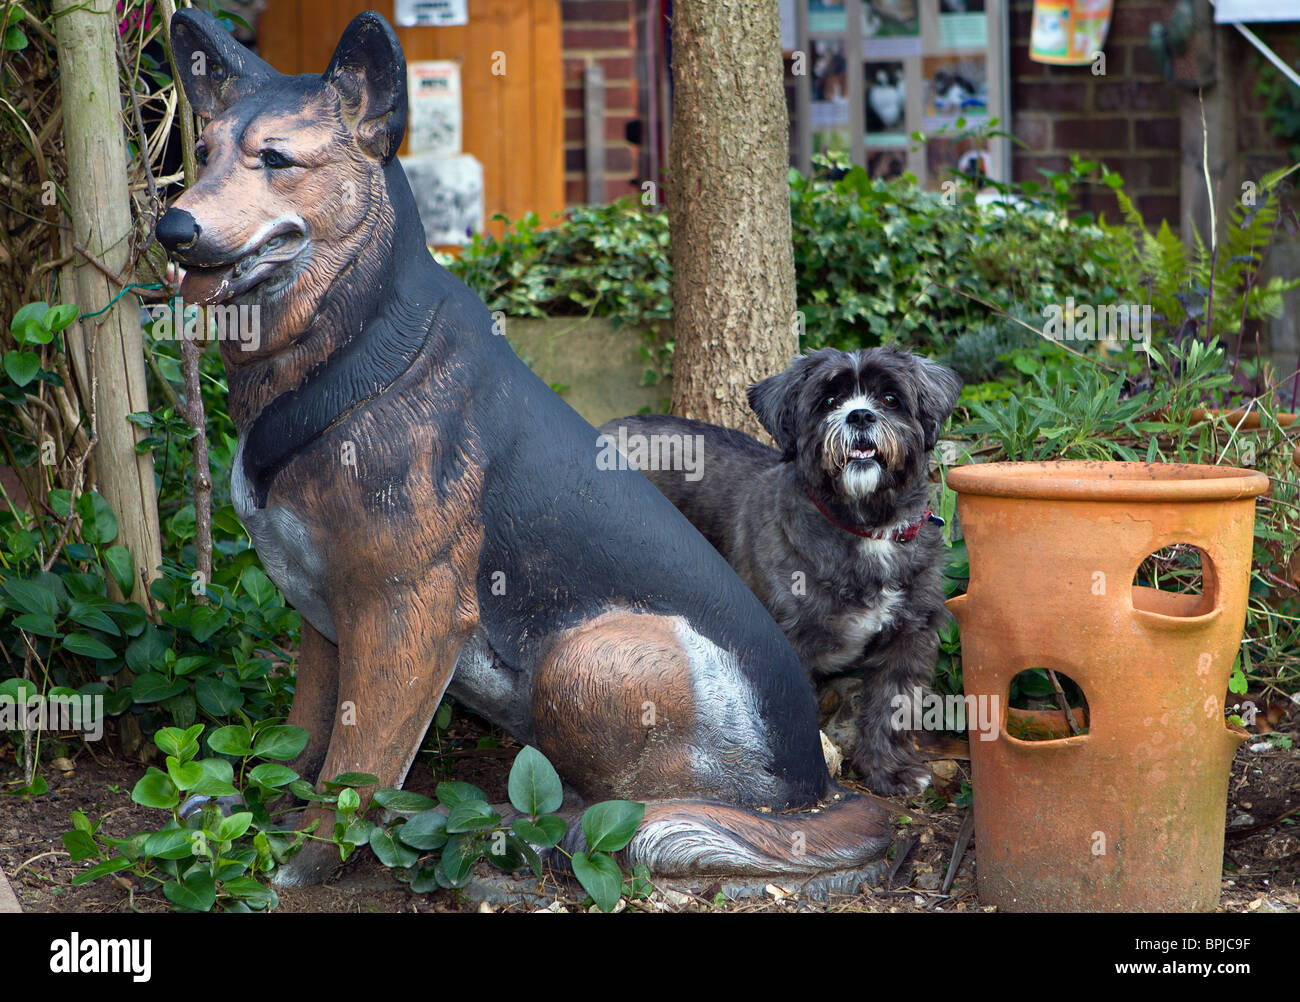 Little Shih Tzu Dog Standing Beside Garden Statue Of A German Shepherd